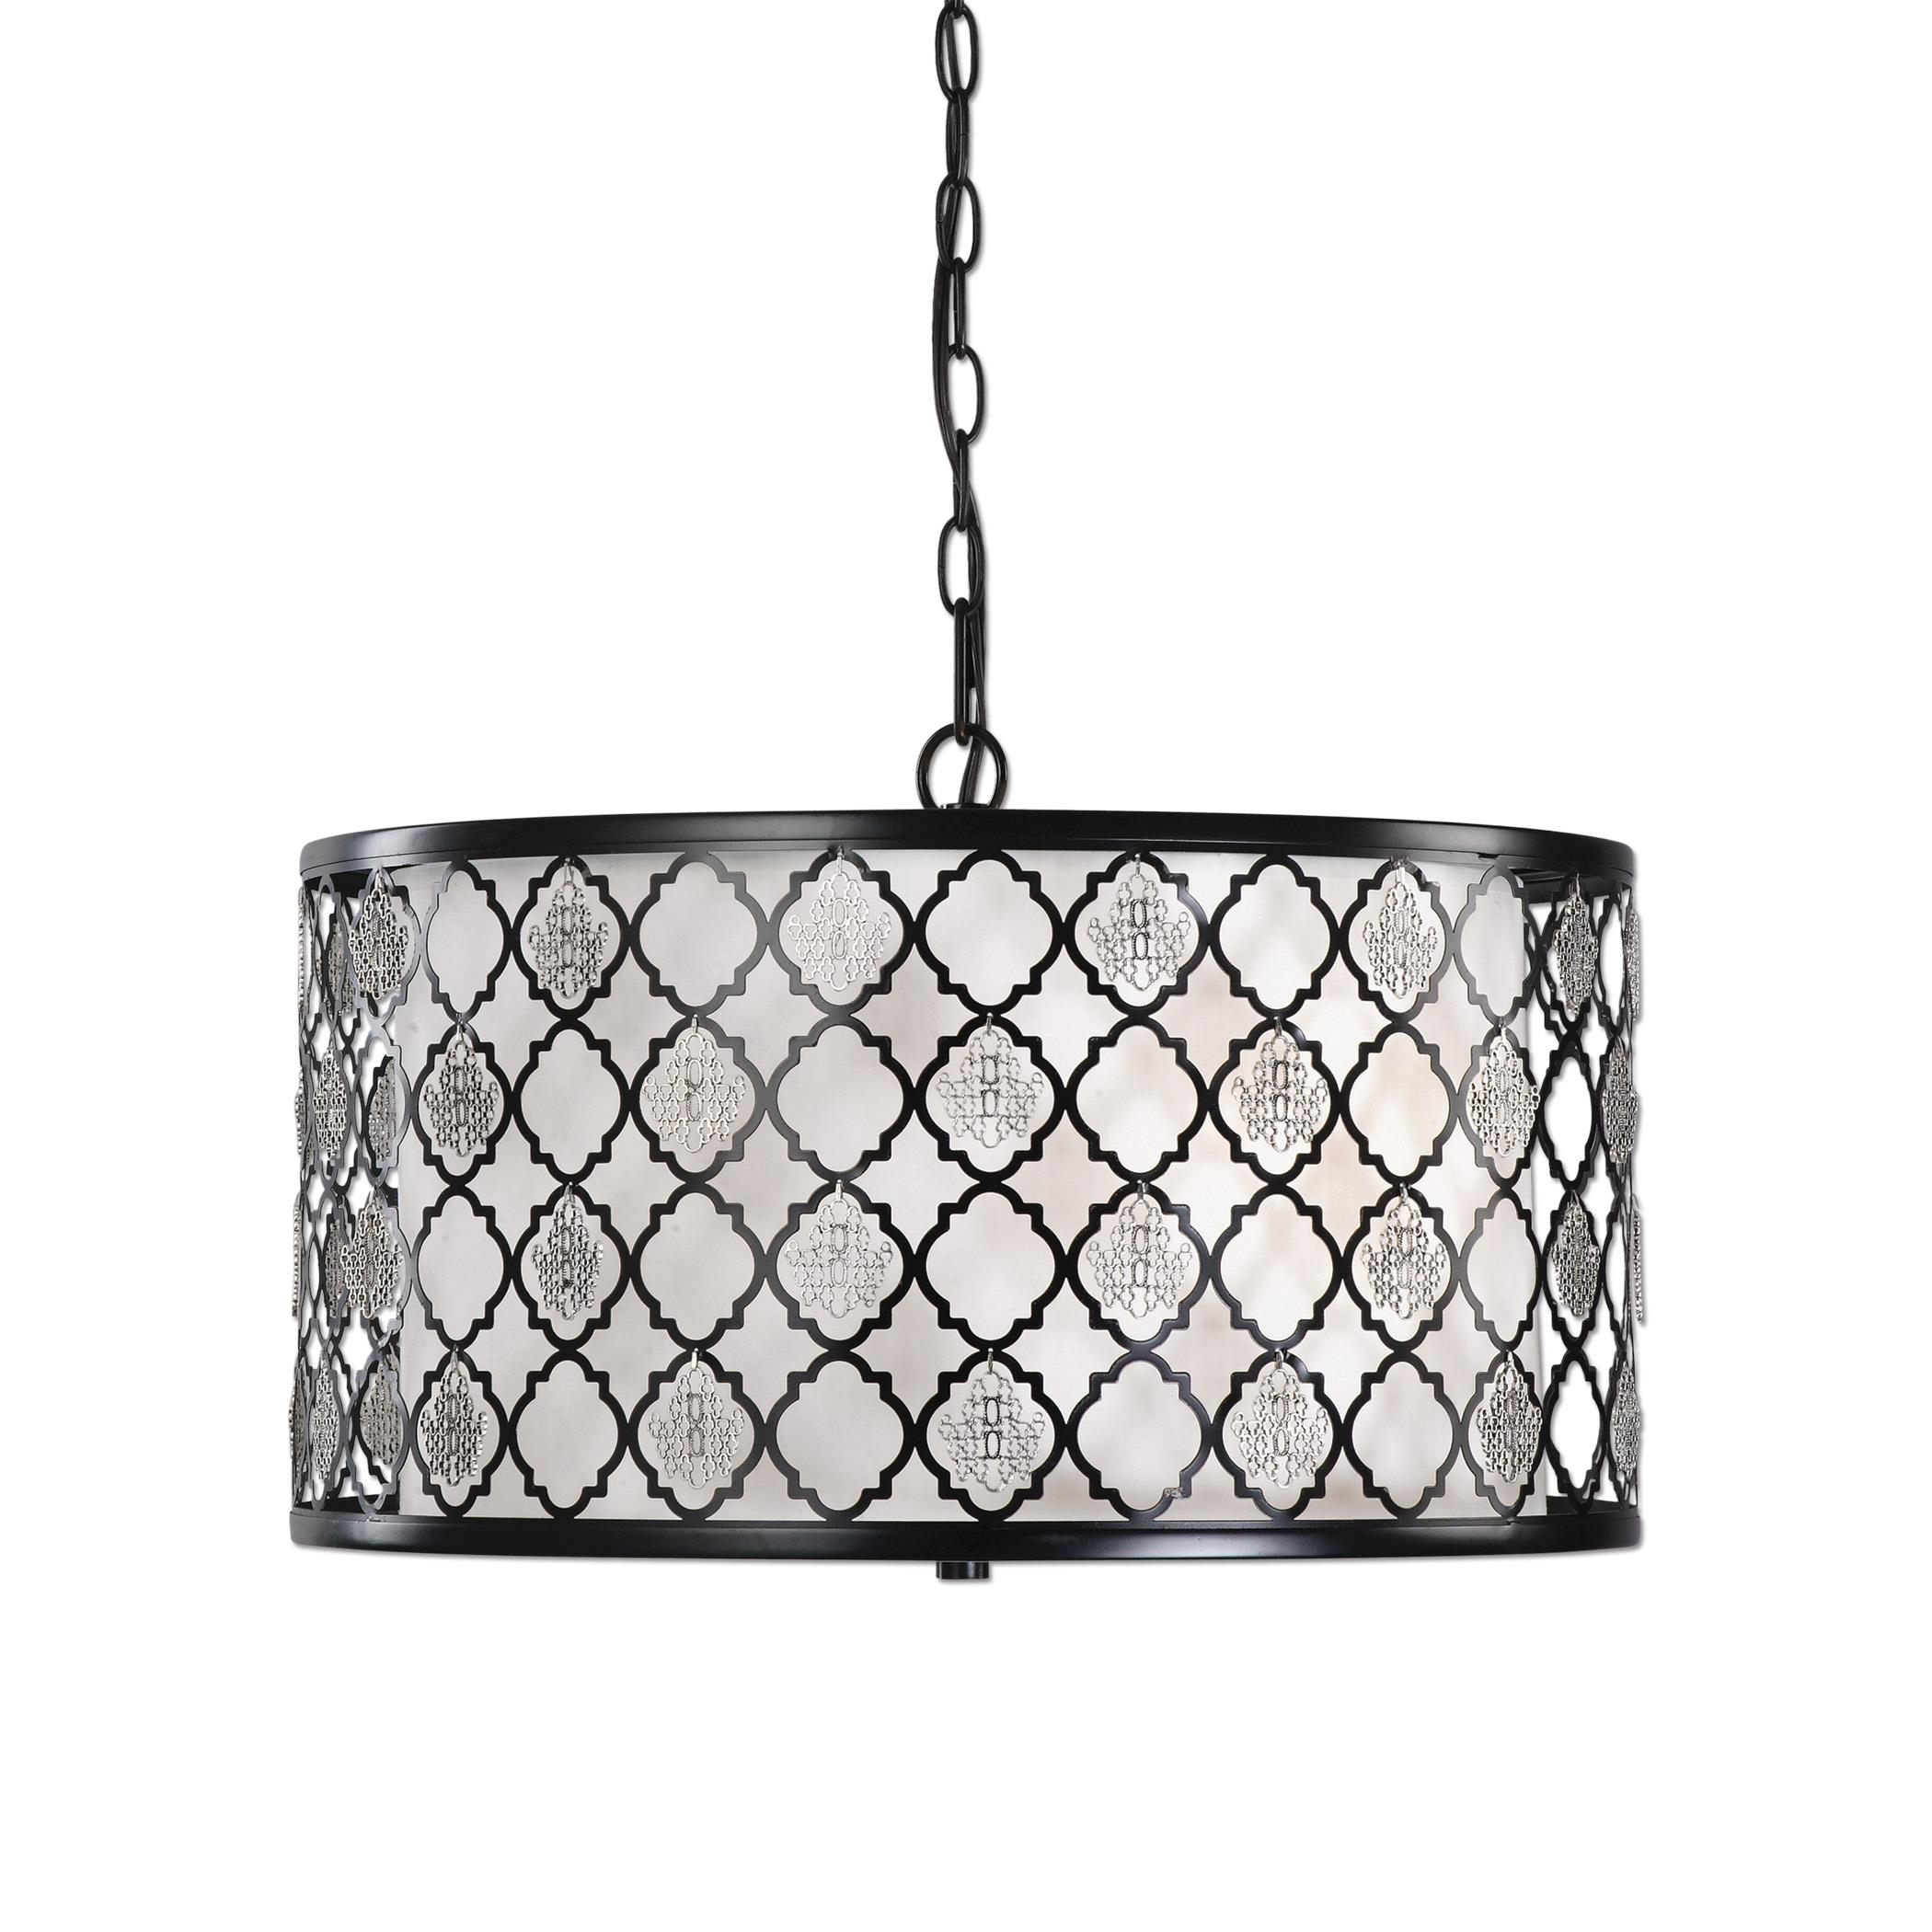 Uttermost Lighting Fixtures Filigree 3 Light Drum Pendant - Item Number: 22062